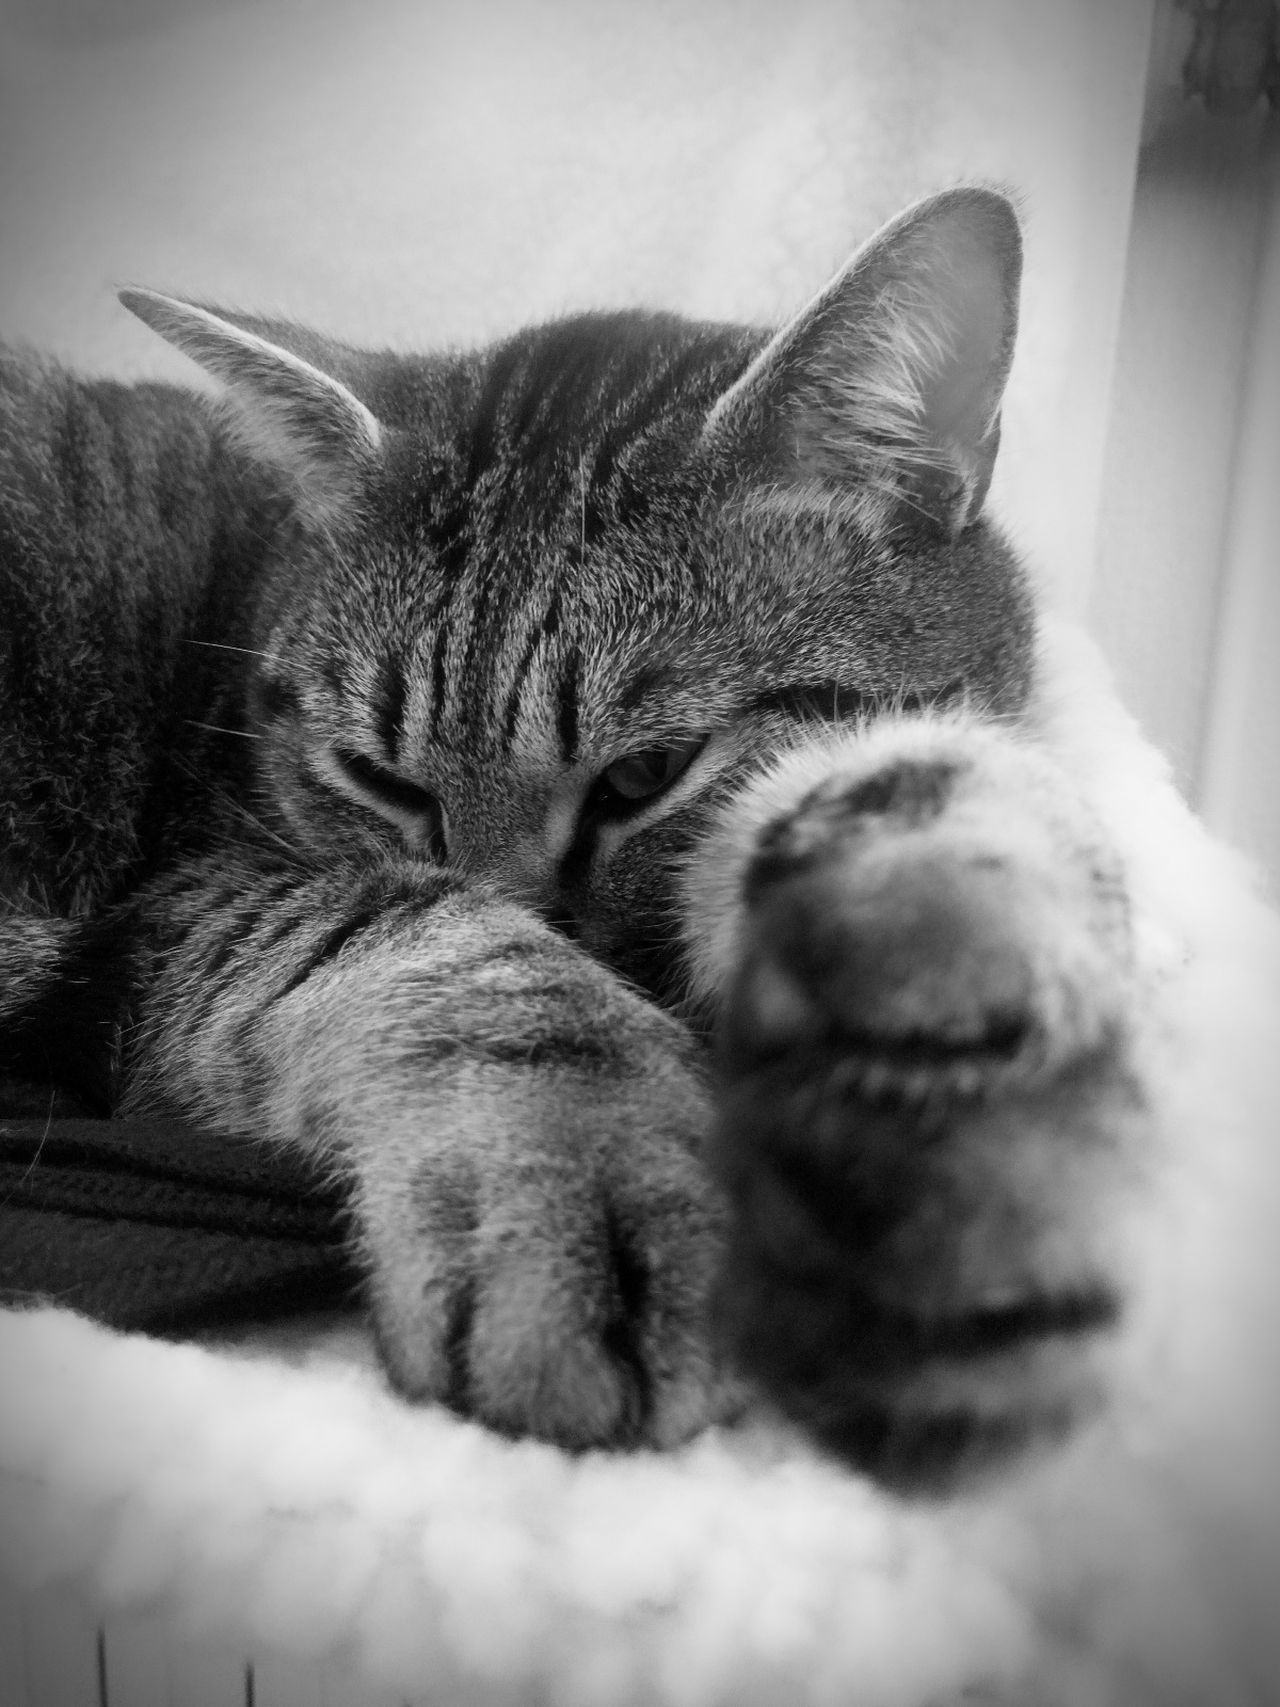 Domestic Animals Domestic Cat Pets Animal Themes Cat♡ Mycat Animal_collection Mycat♥ Mypetisbetterthanyours Black And White